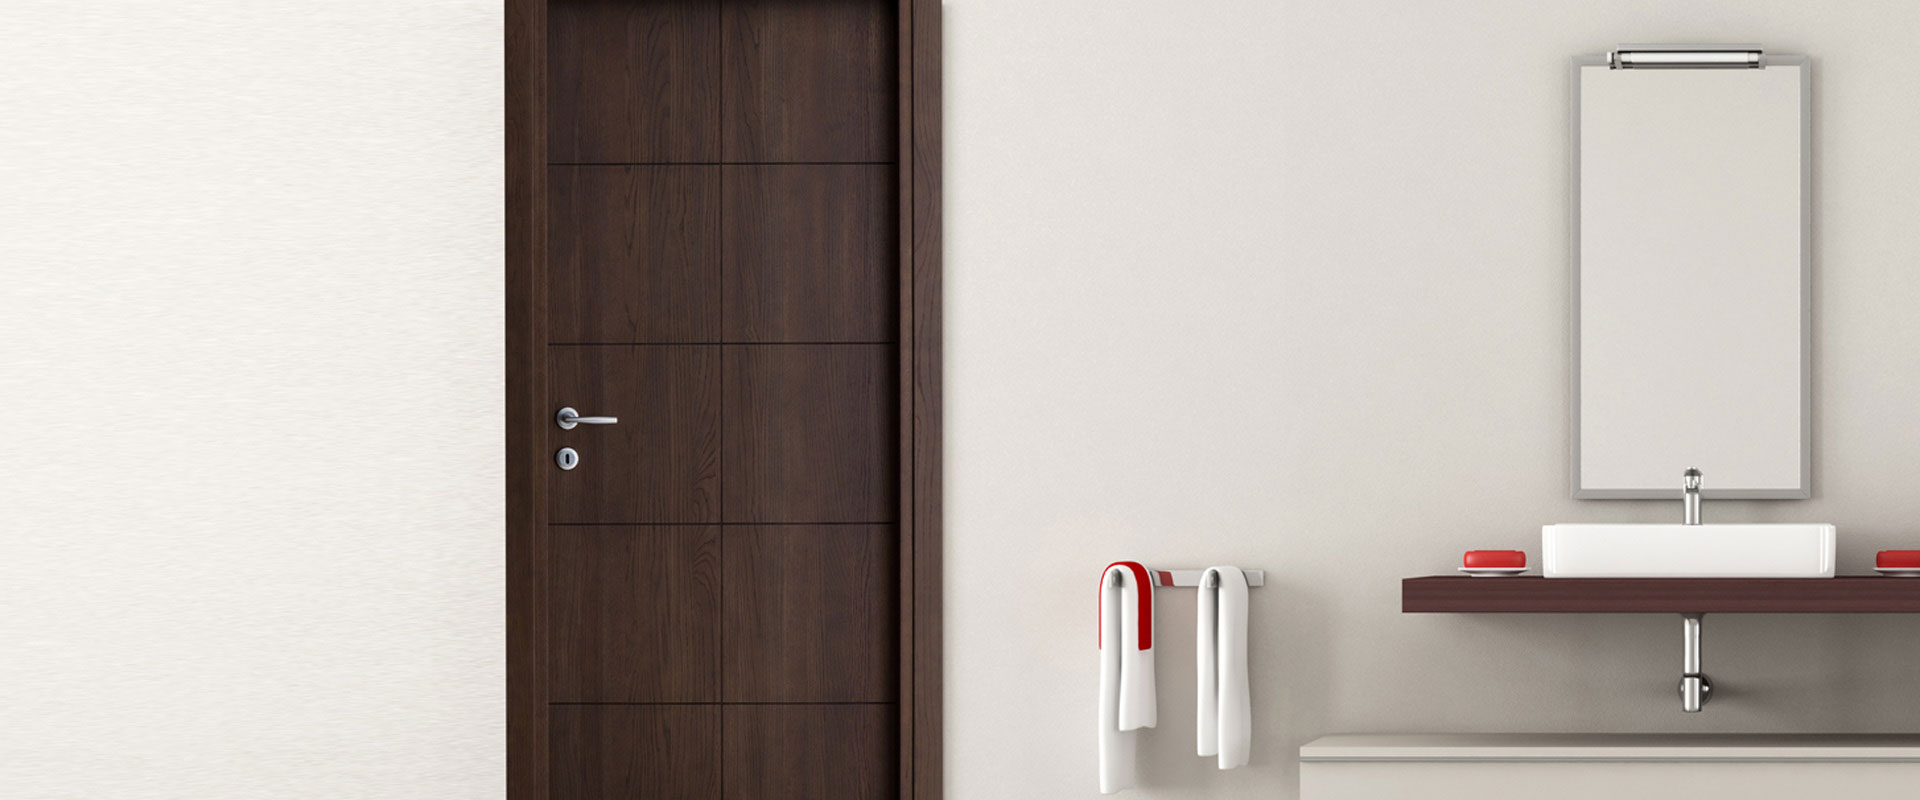 WOODEN PANTOGRAPHED DOORS DOLCE VITA